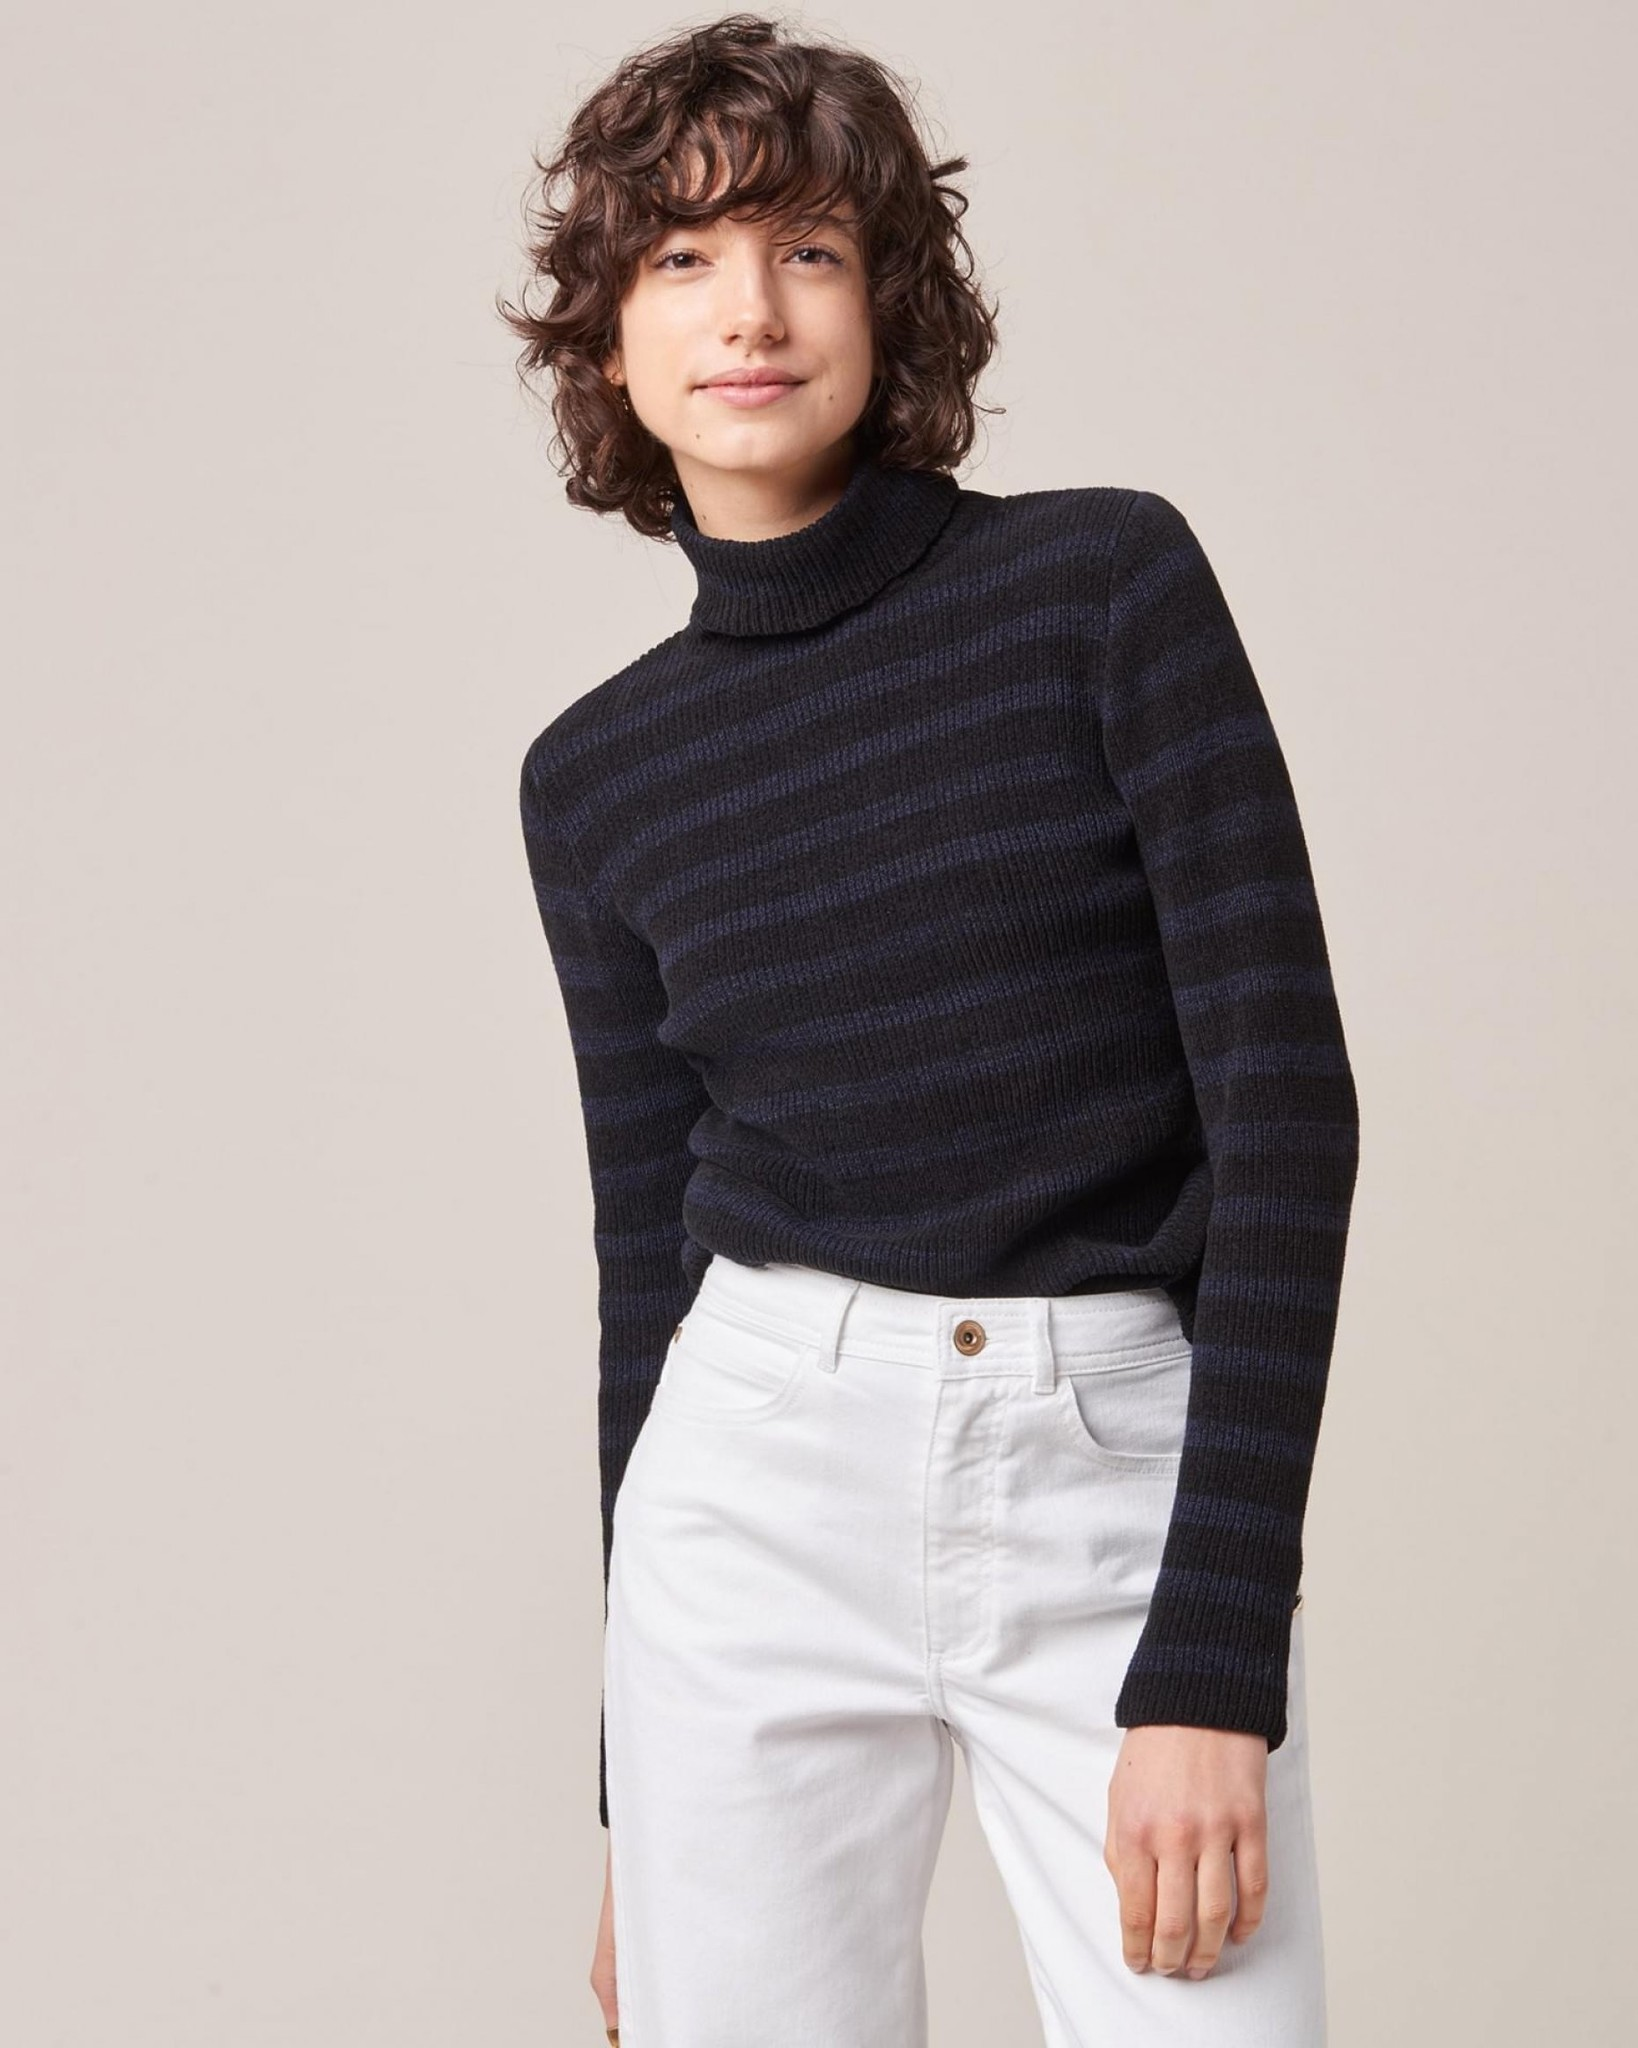 Long-Sleeve Turtleneck Sweater with Metallic Buttons in Black and Navy Stripe